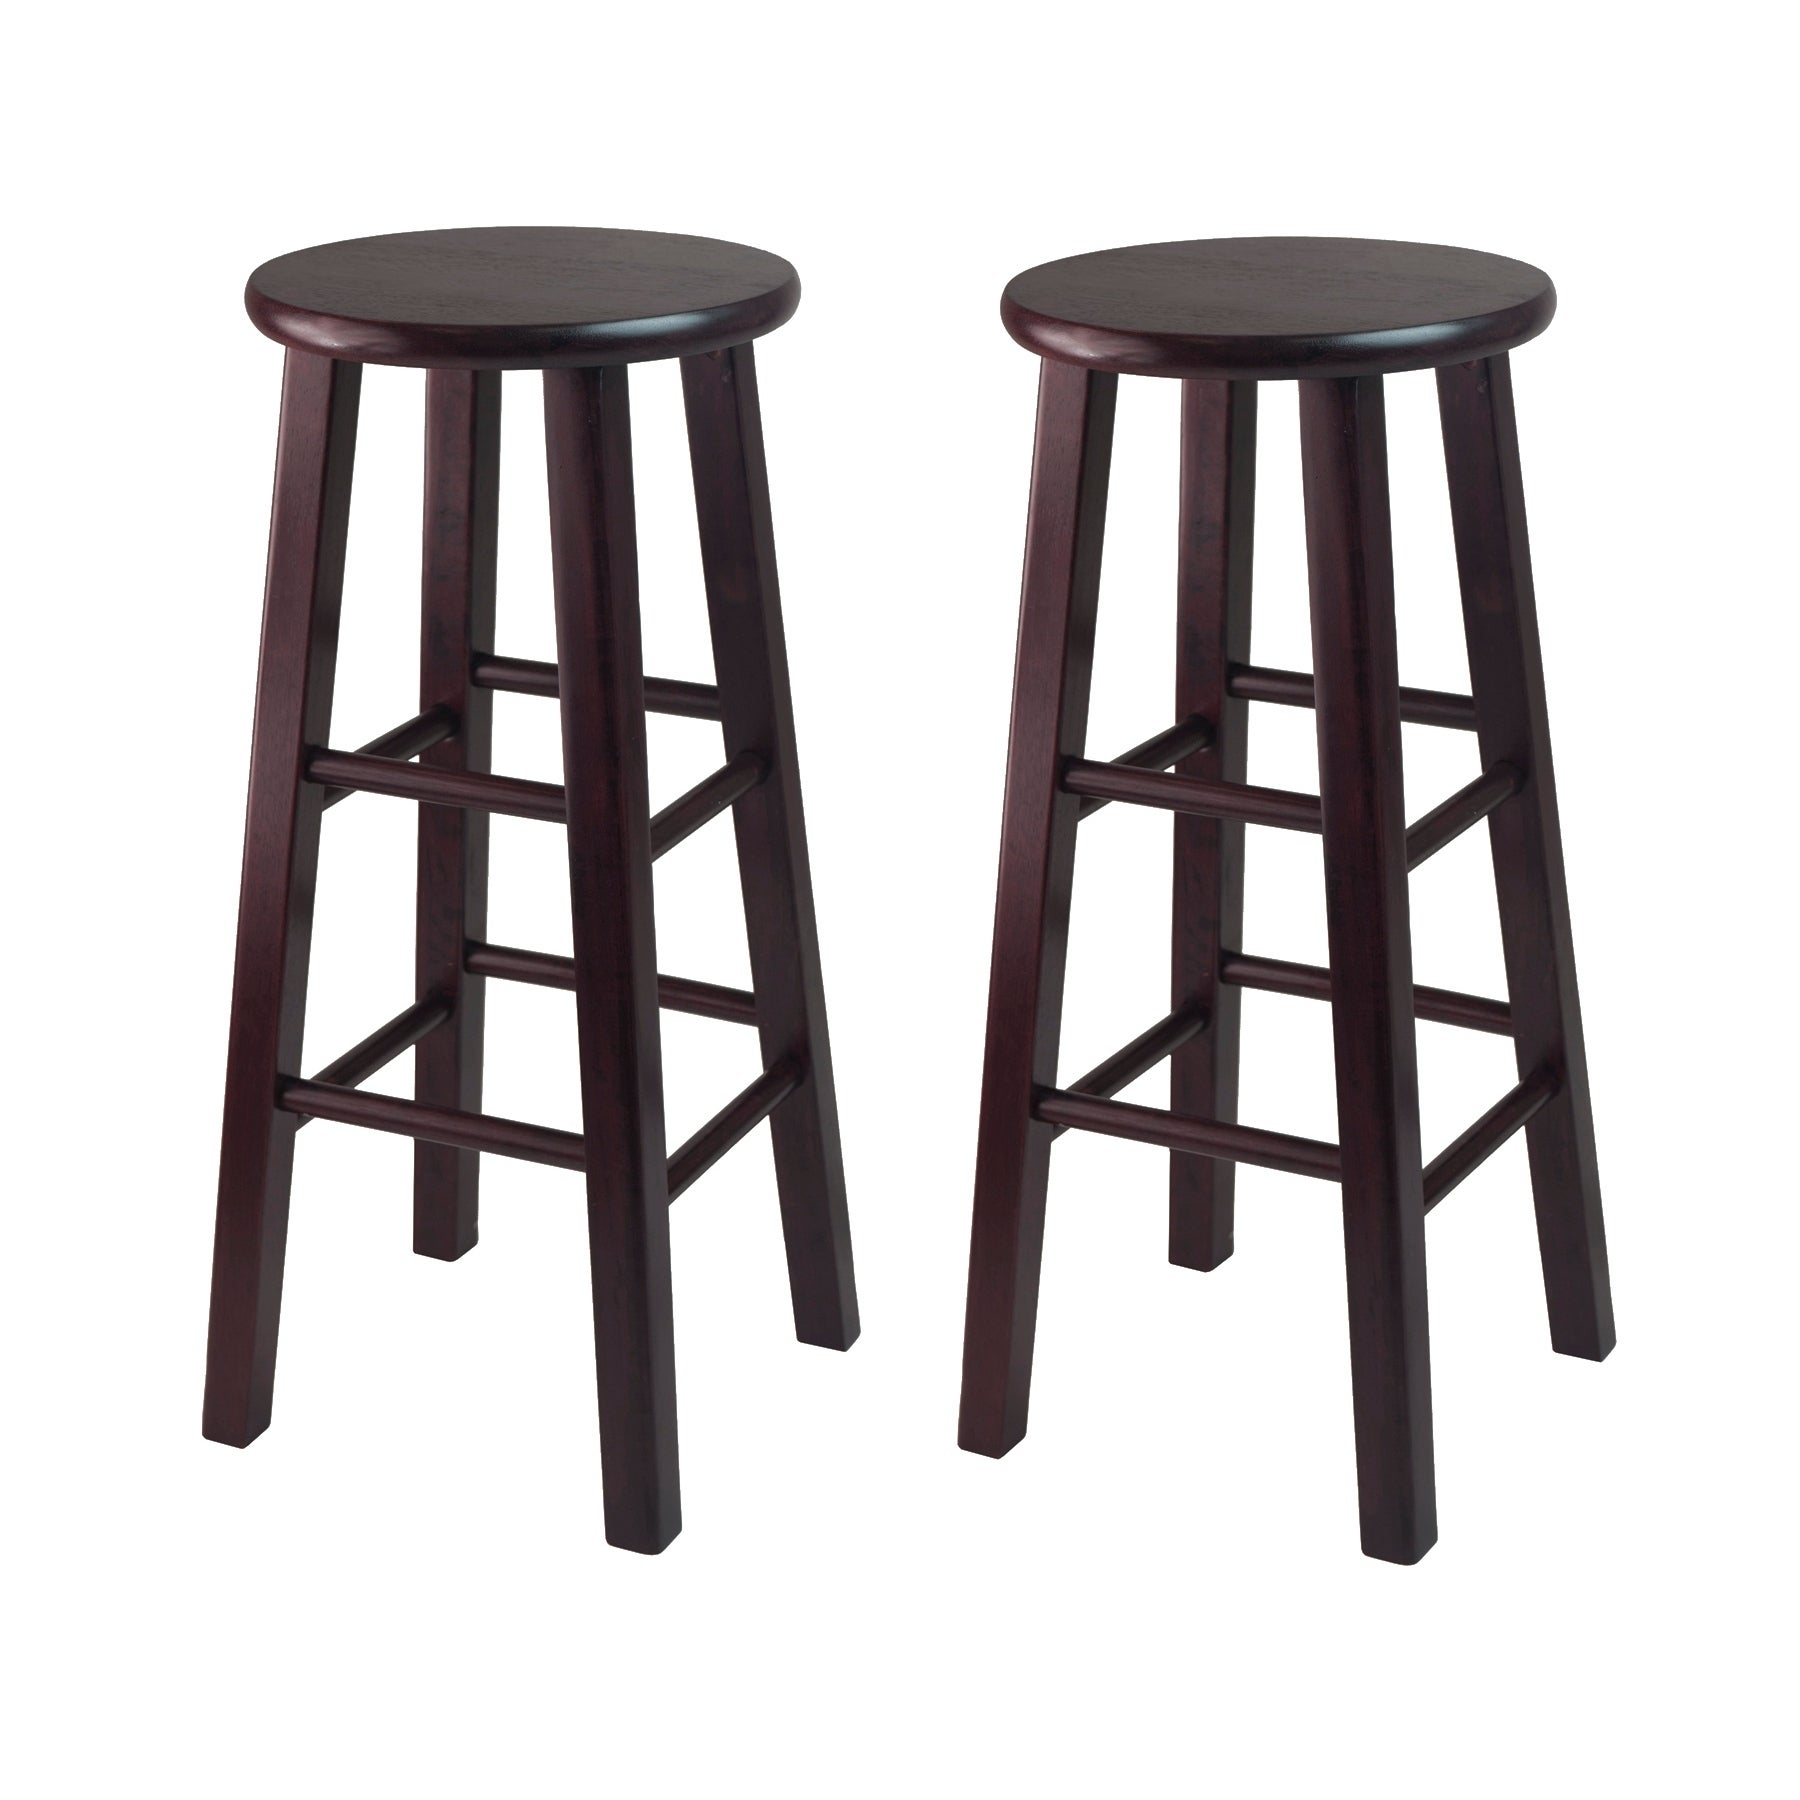 Excellent Pacey 2 Pc 29 Bar Stool Set Espresso Gmtry Best Dining Table And Chair Ideas Images Gmtryco